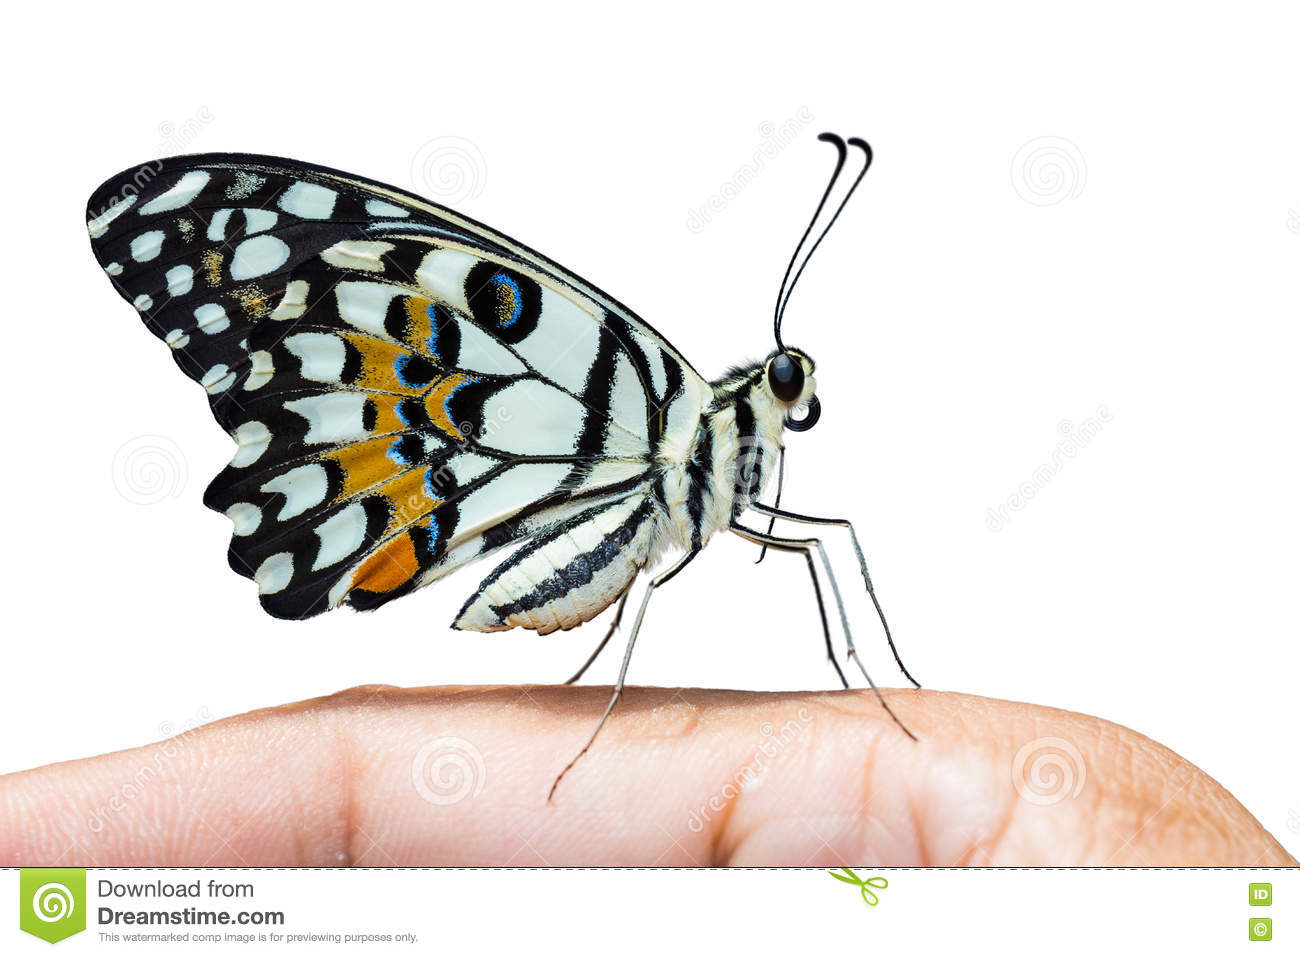 Butterfly thorax clipart.